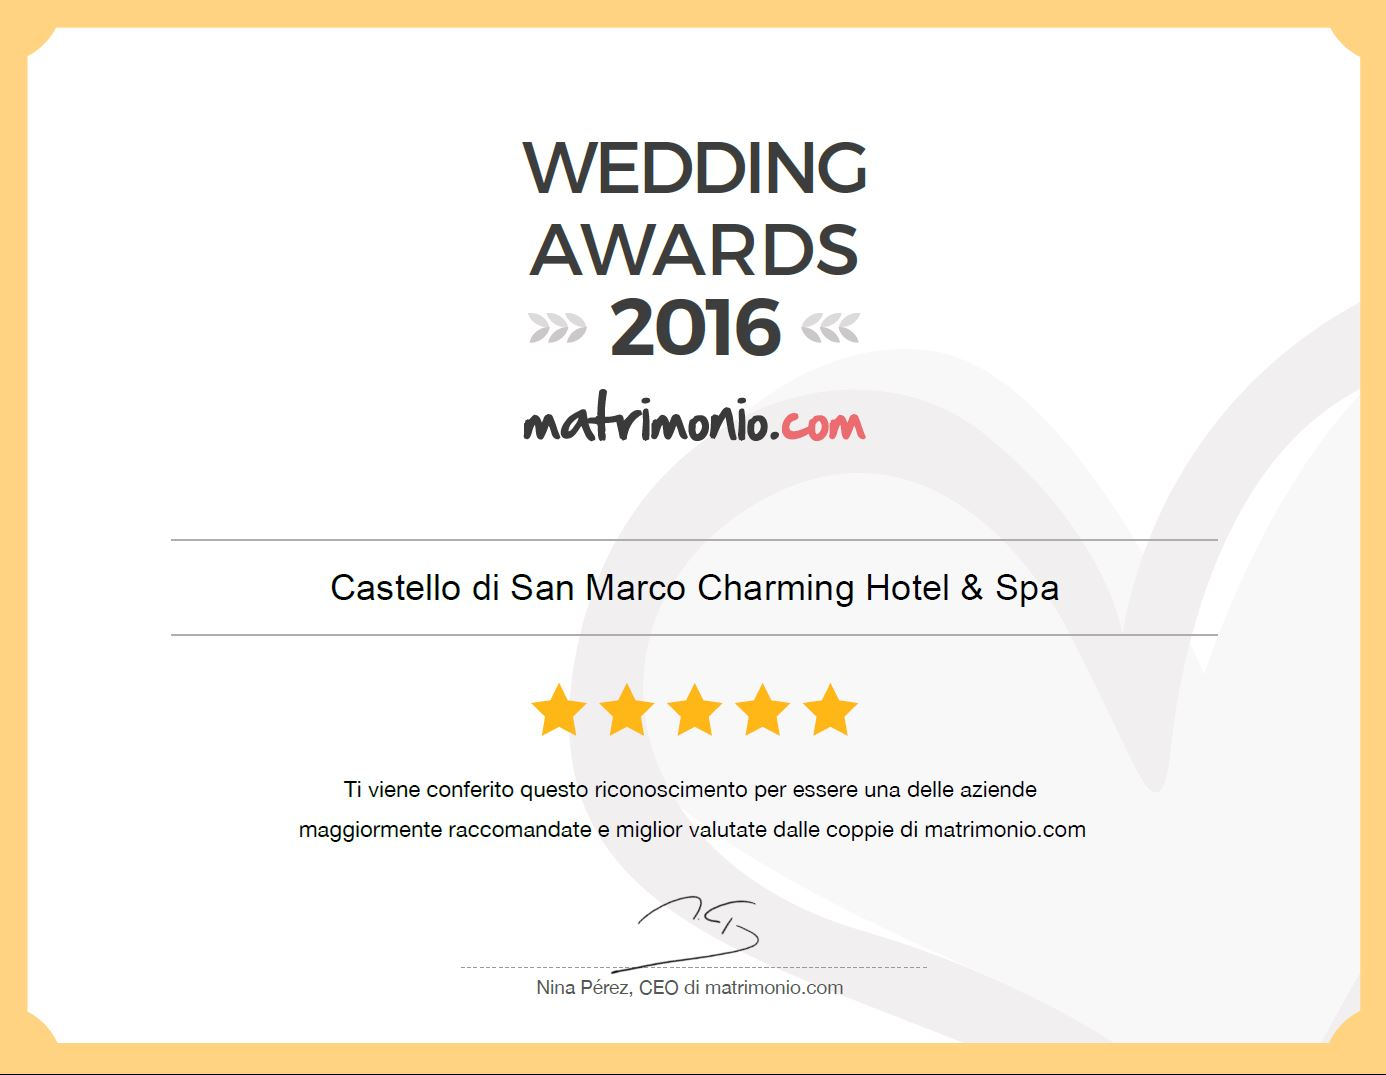 wedding awards sicilia 2016